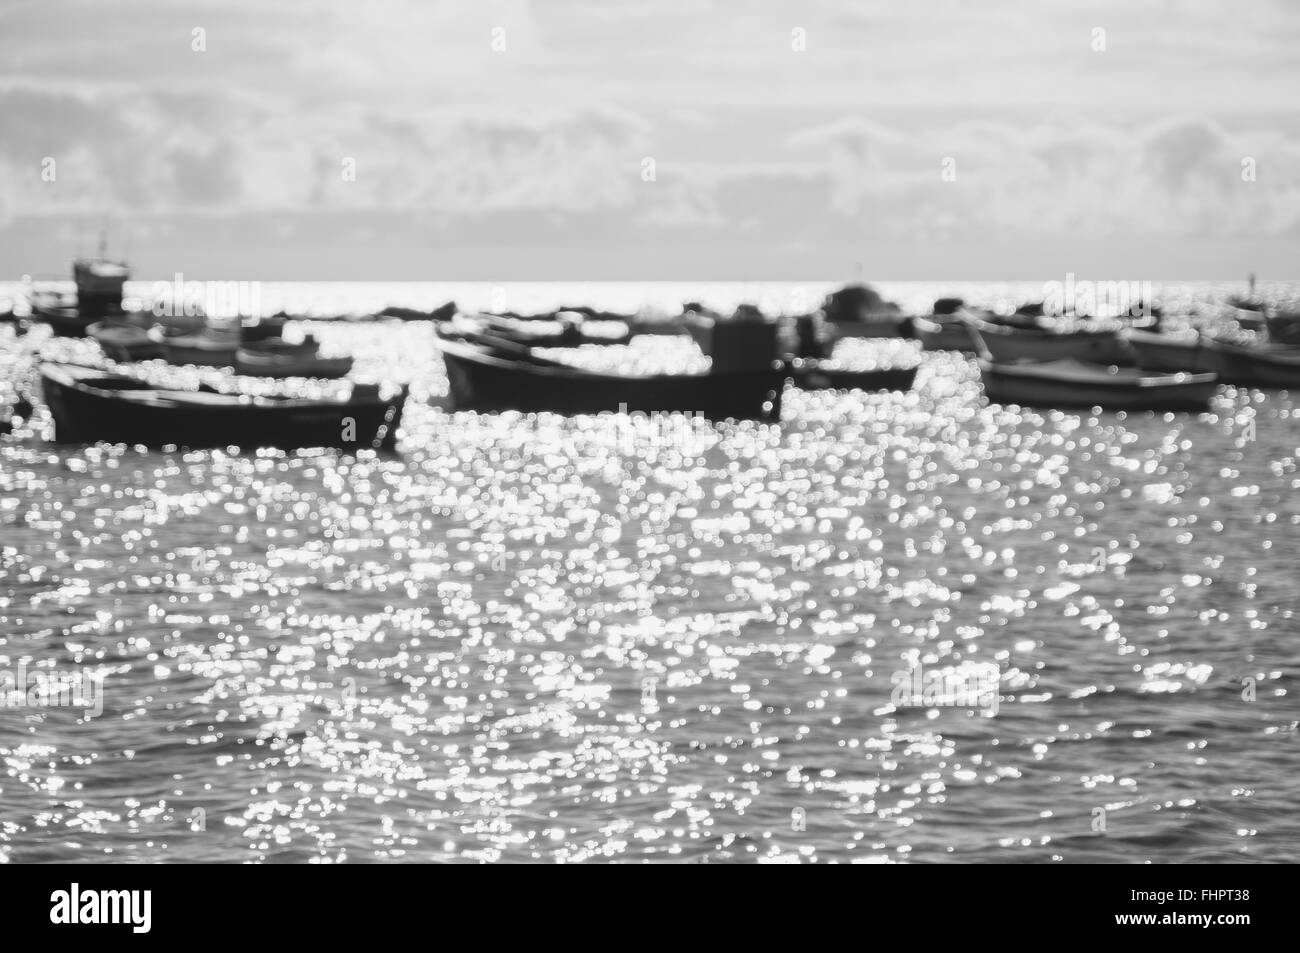 Blurred background of boats against sunlight and sparkles on water surface, black and white image - Stock Image